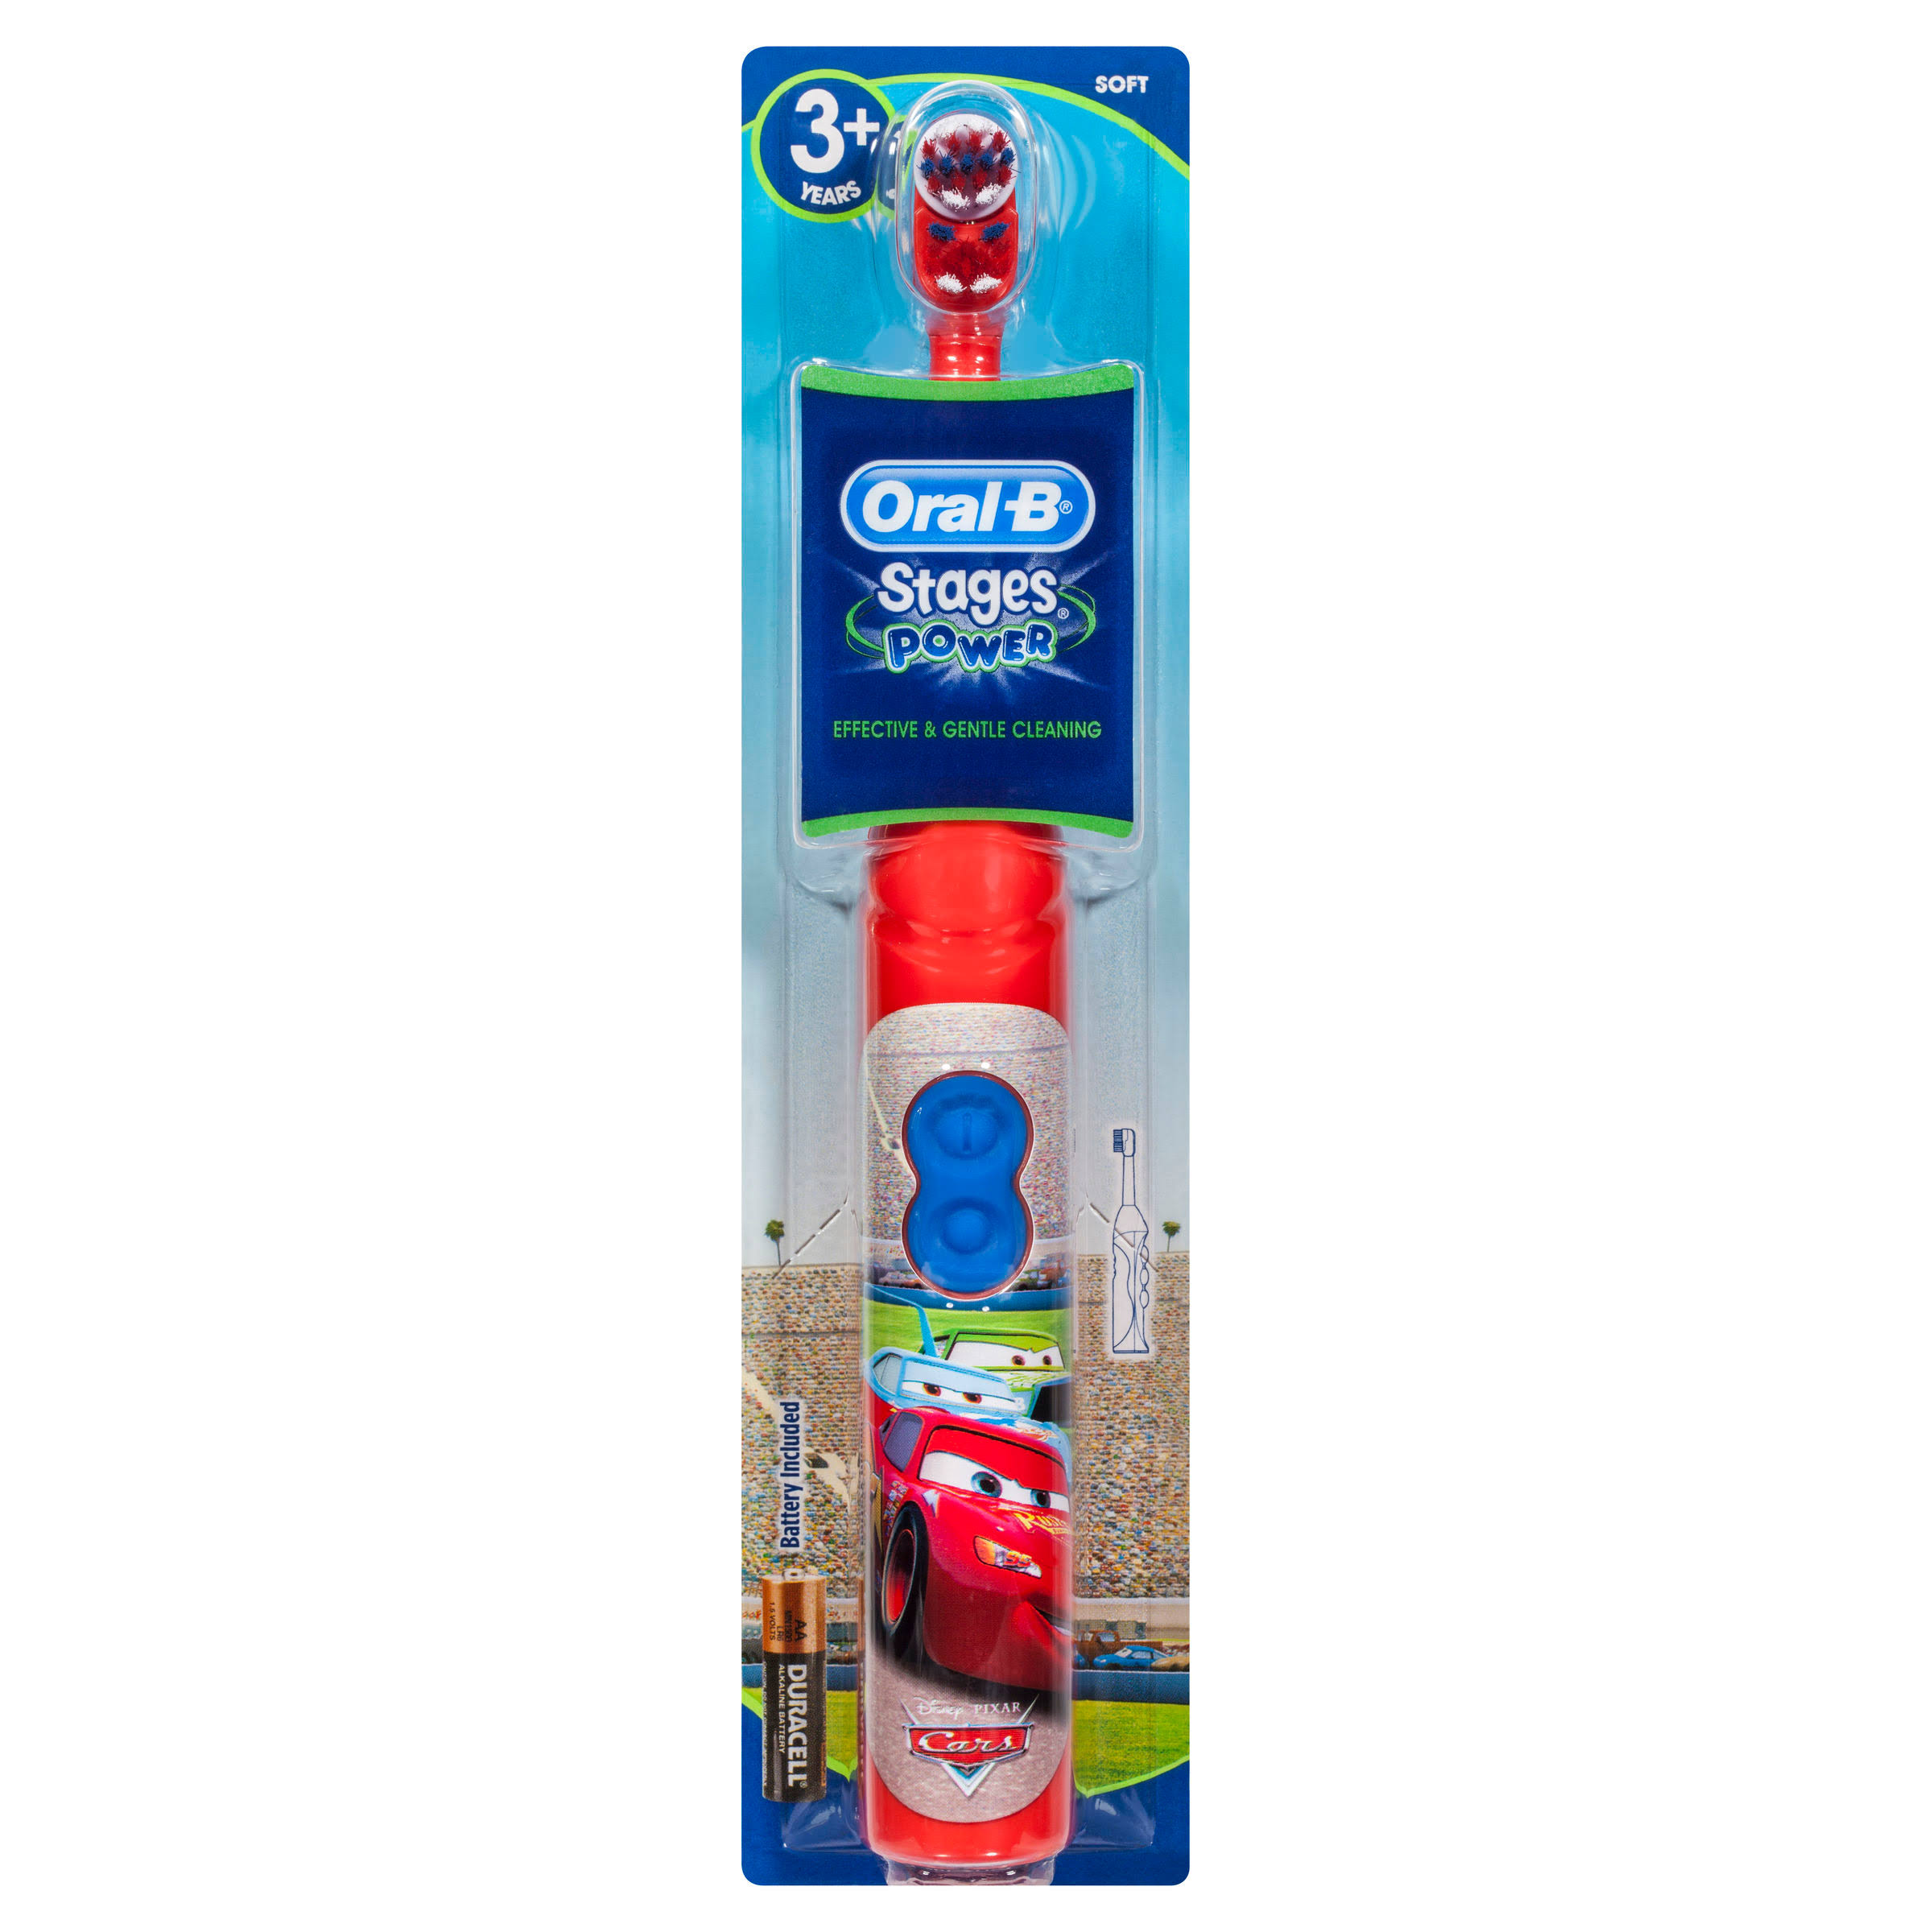 Oral-B Stages Power Disney Kid's Battery Toothbrush